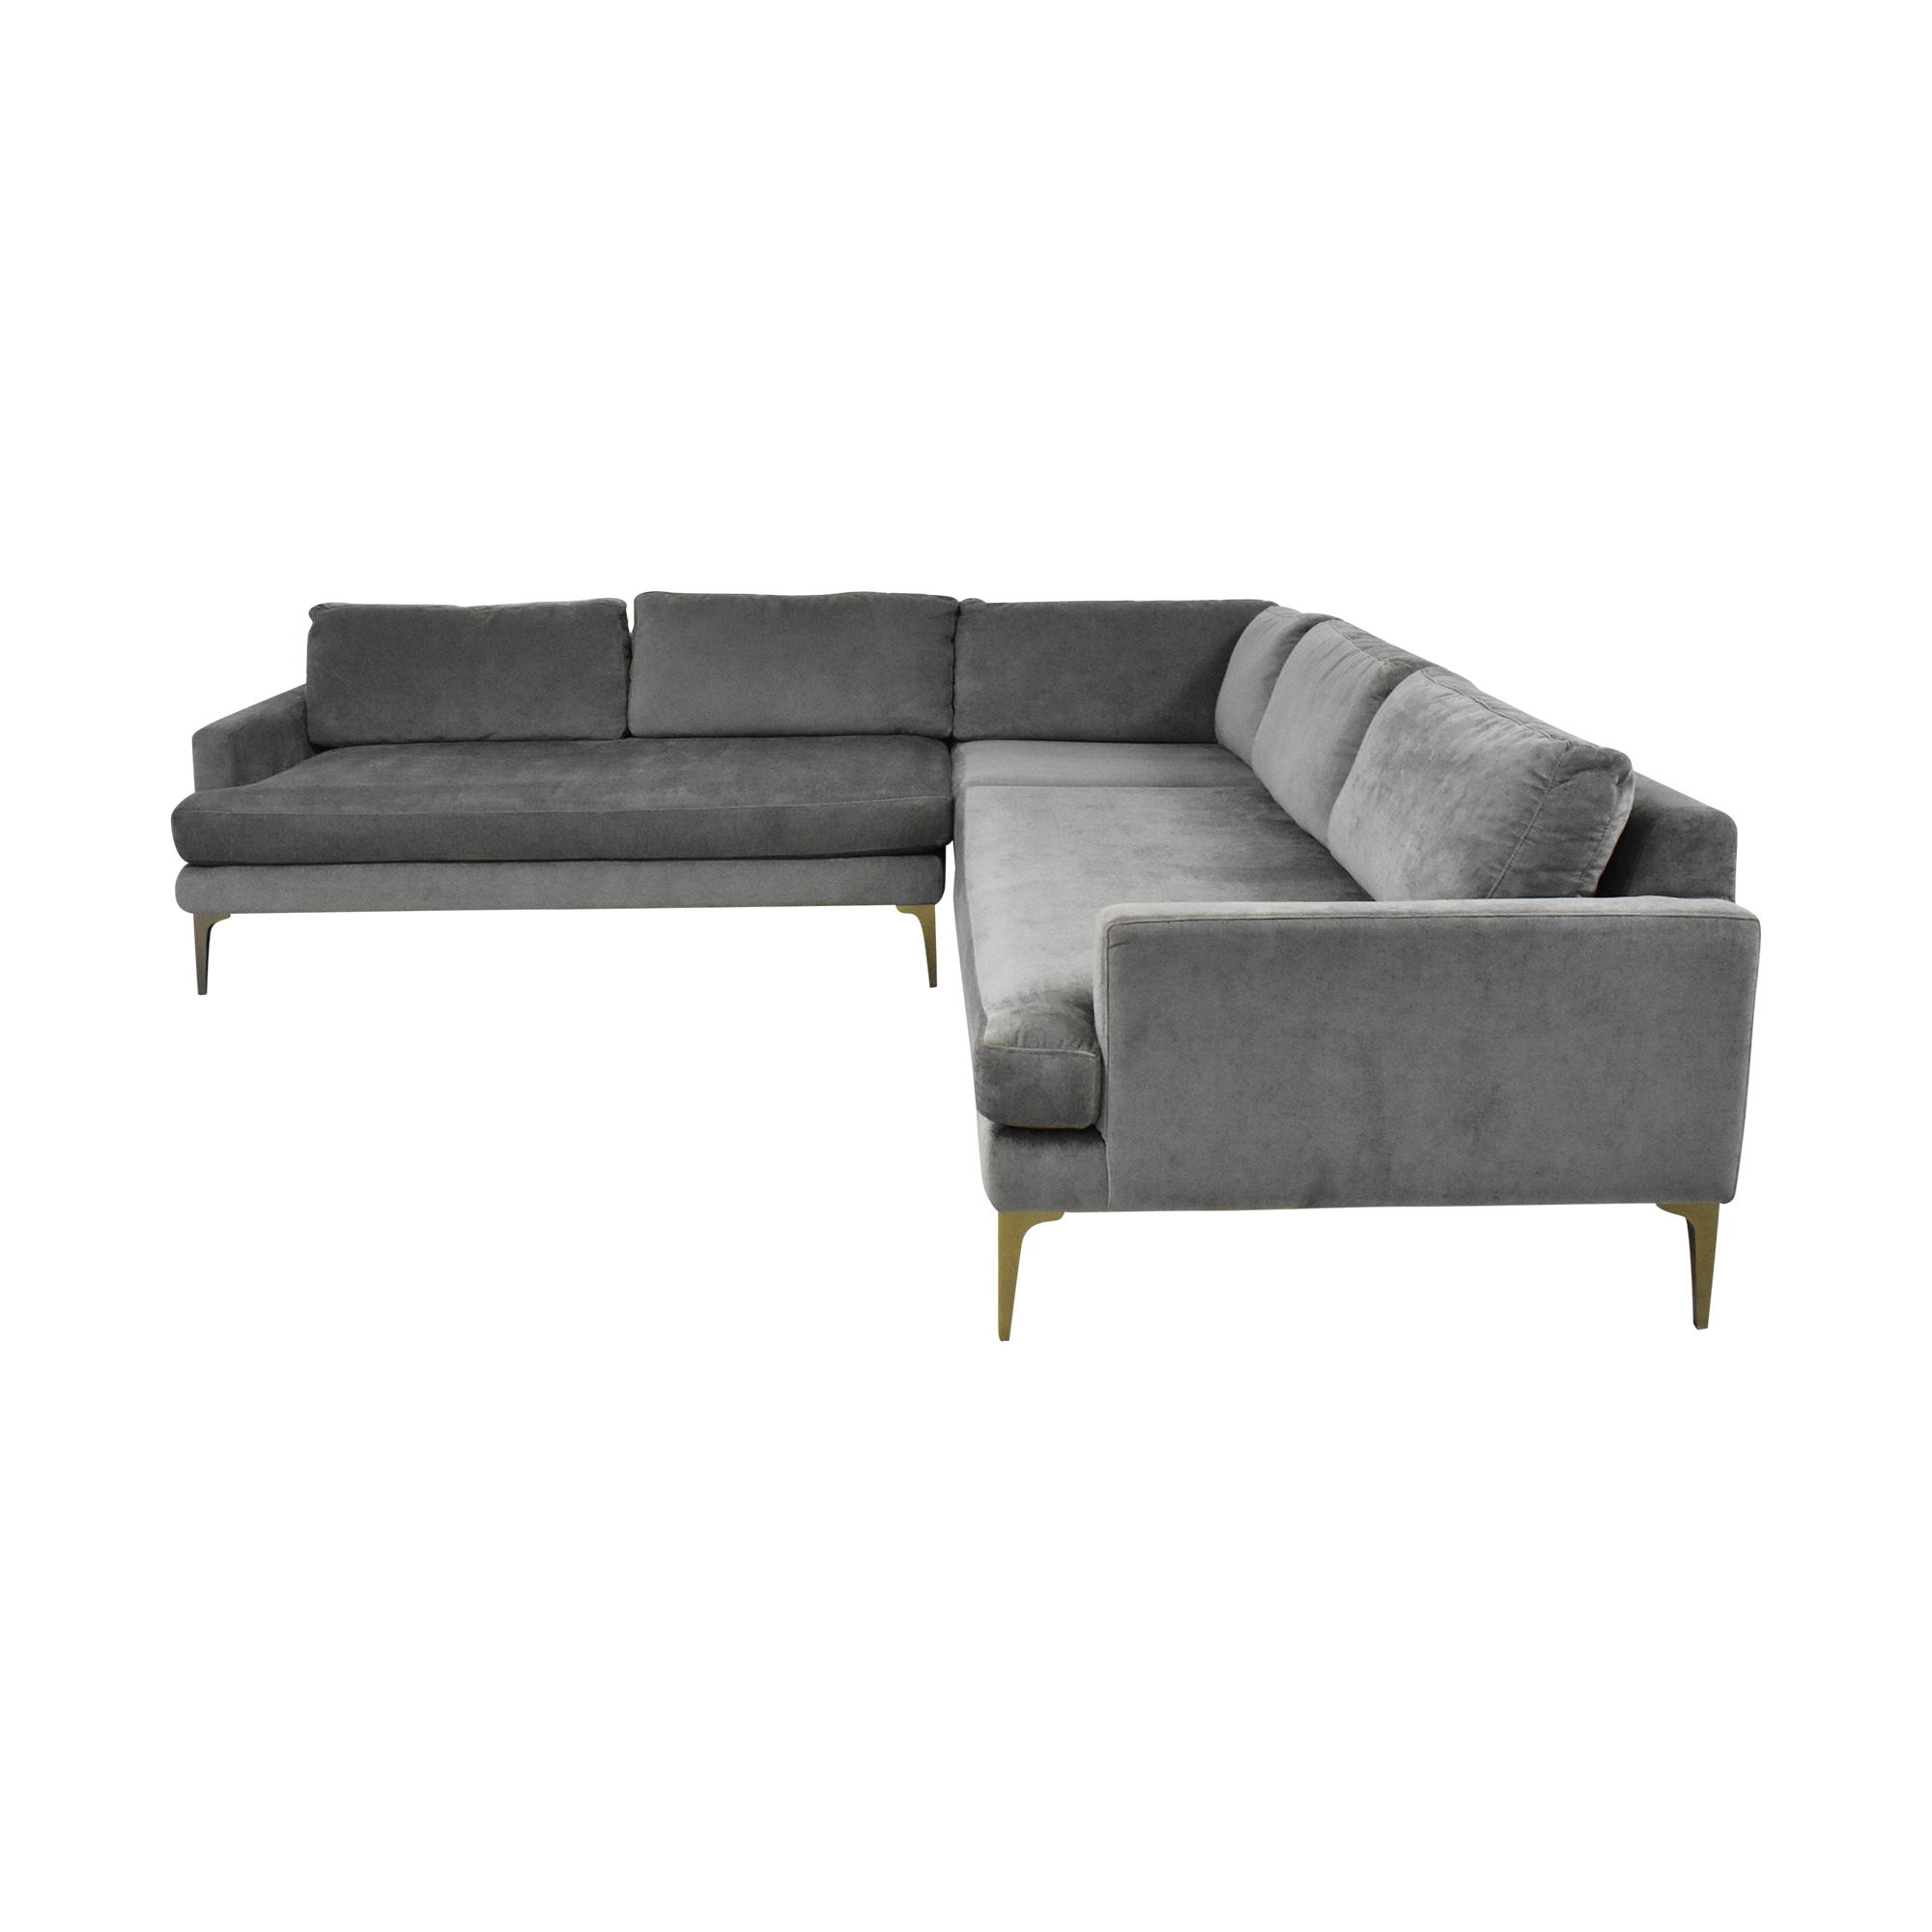 West Elm West Elm Andes Three Piece L Shaped Sectional Sofa